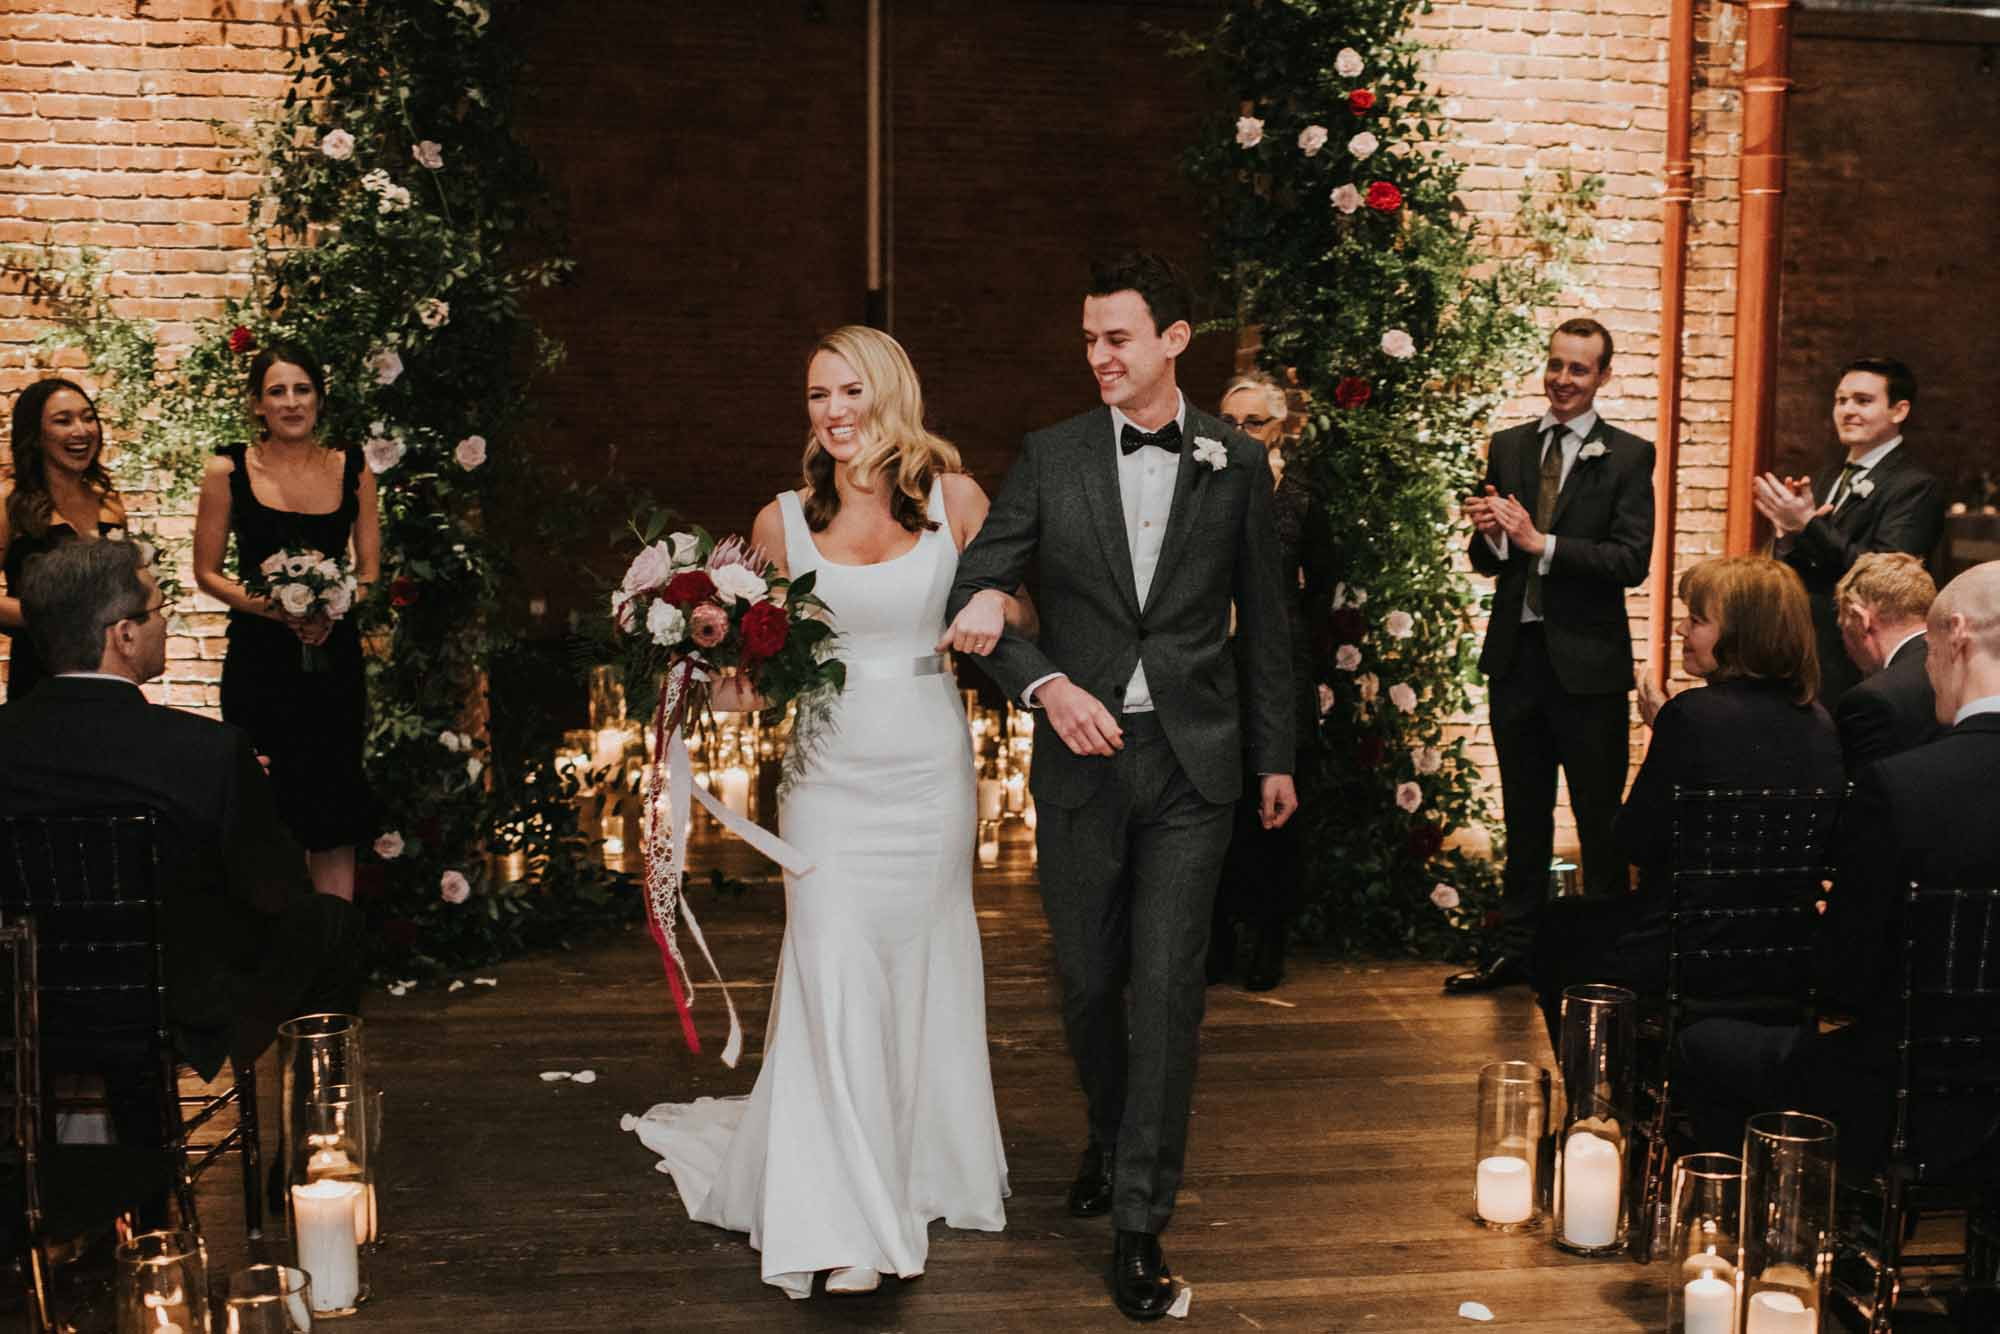 bride and groom face cheering guests after wedding ceremony